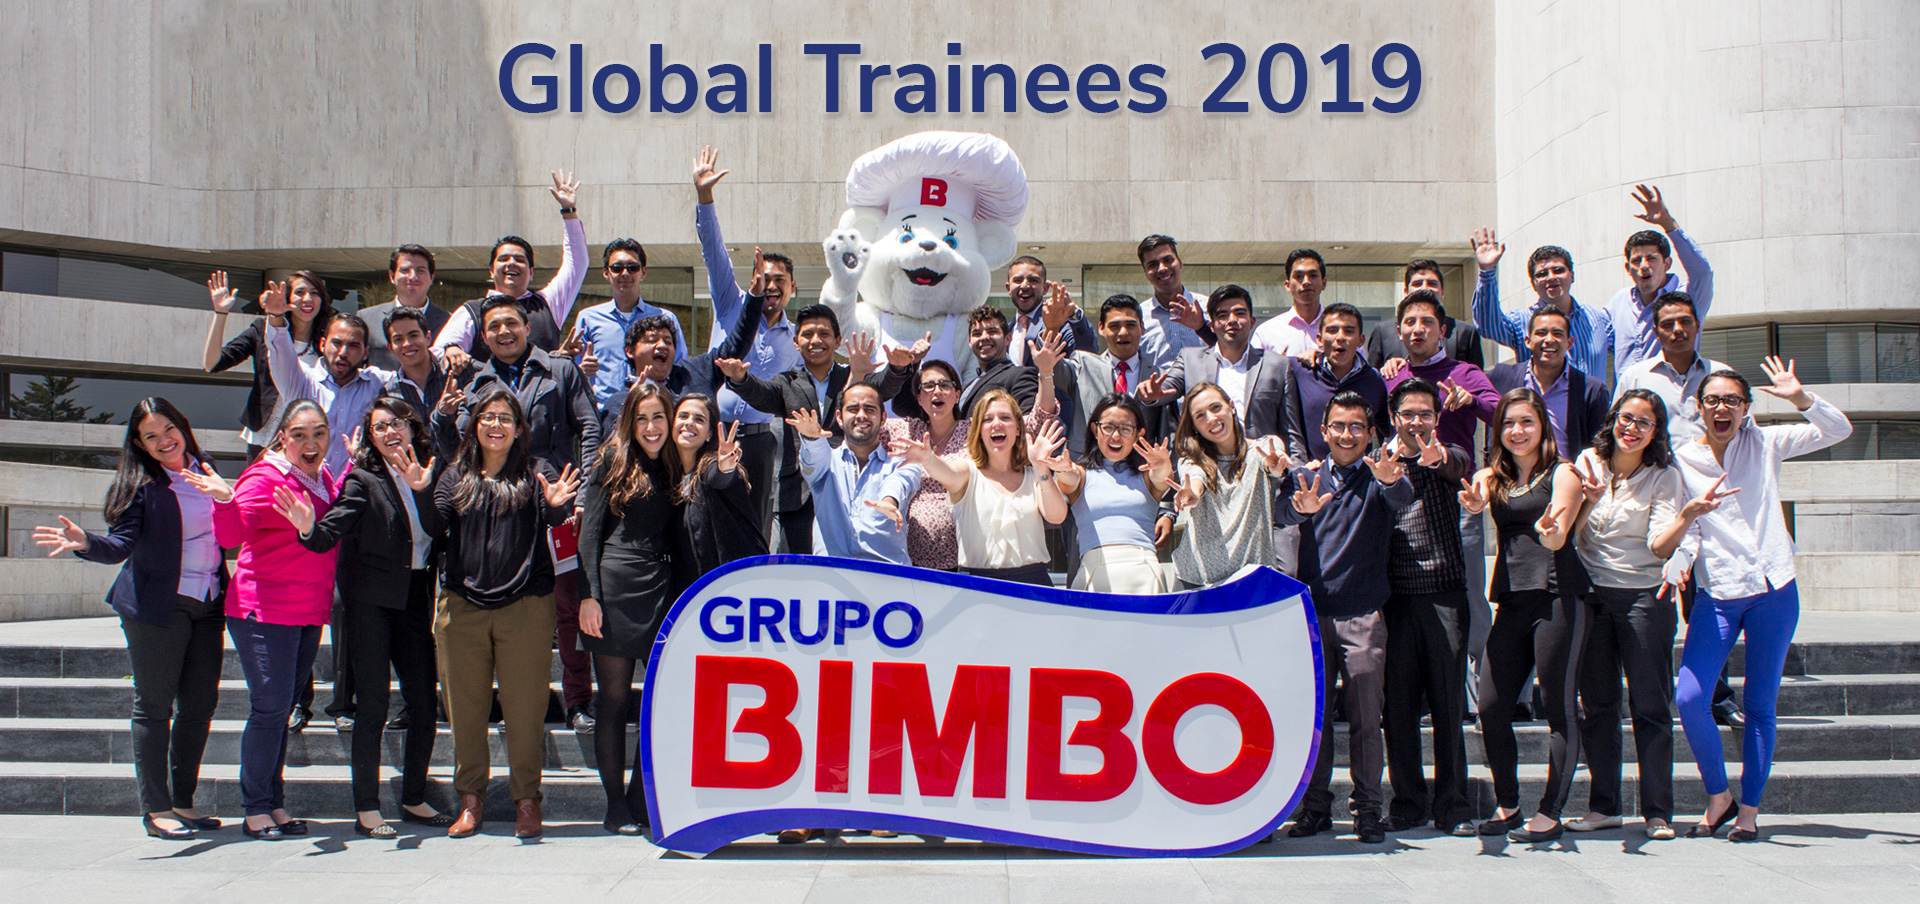 Grupo Bimbo | GLOBAL TRAINEES 2019